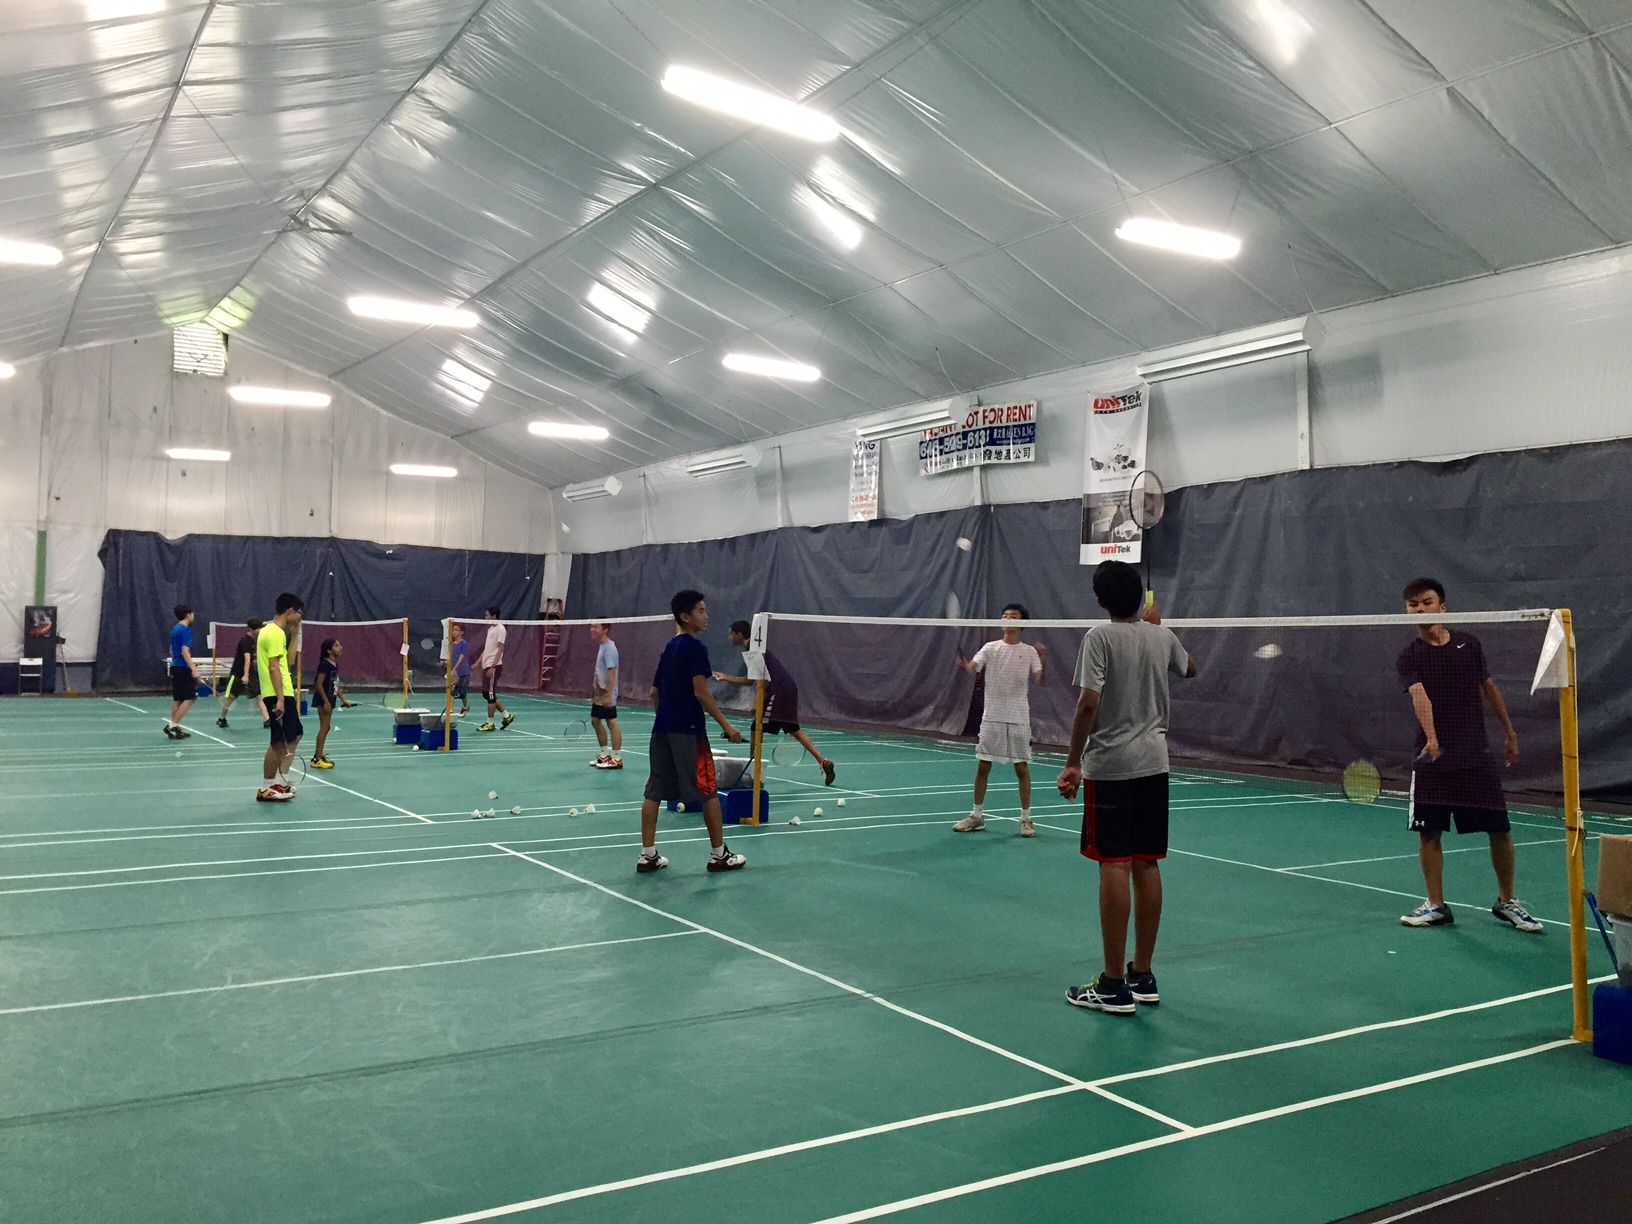 LISC Badminton Group Training